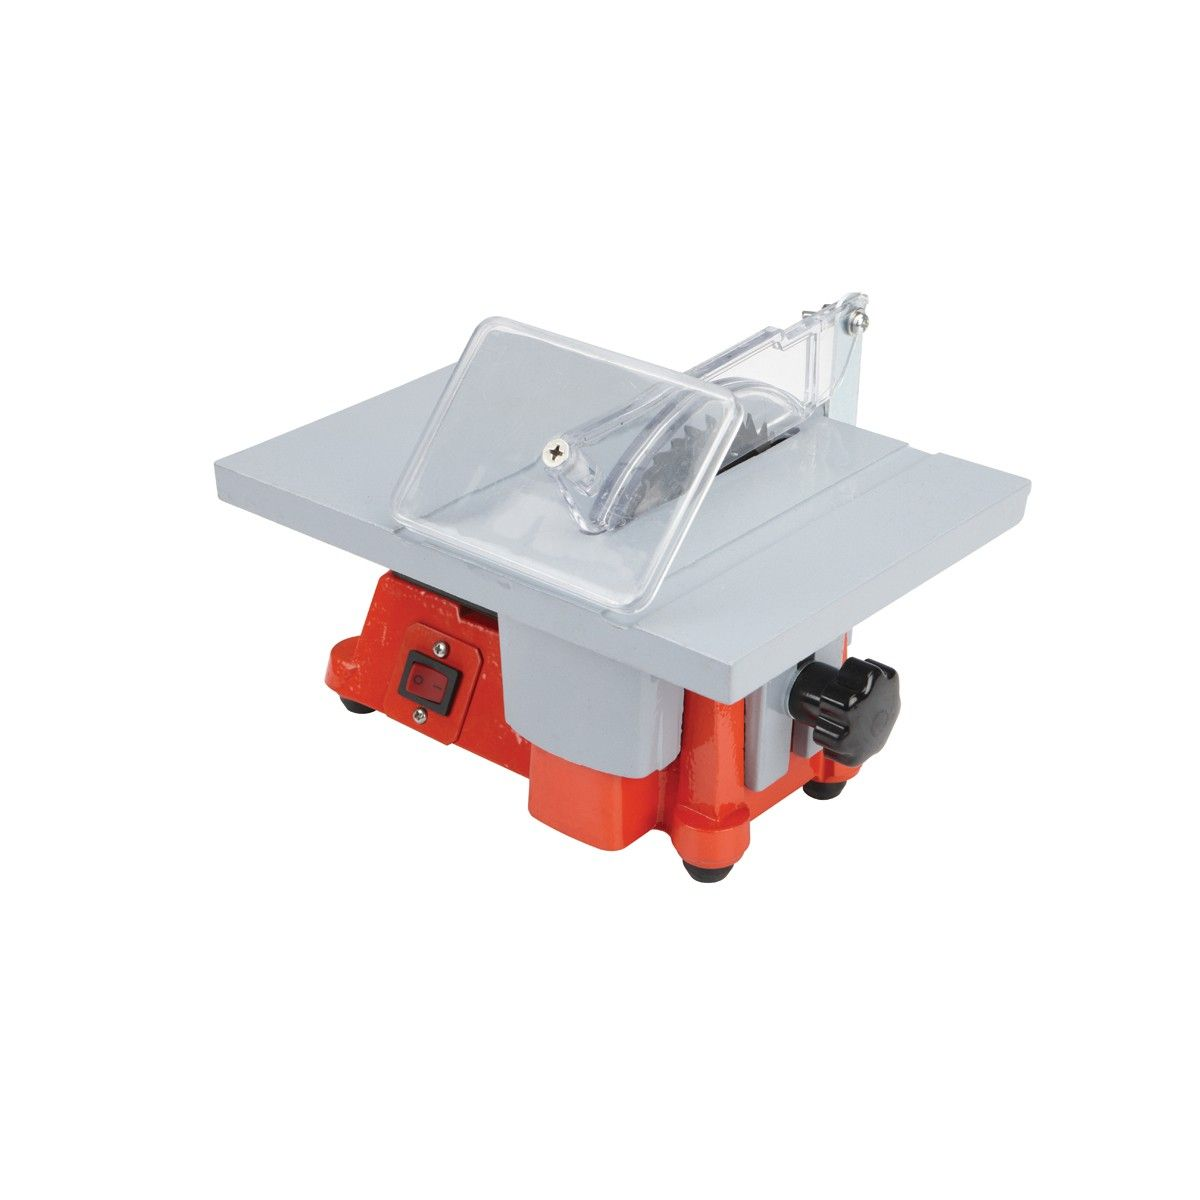 4 in. Mighty-Mite Table Saw with Blade | Carpintería